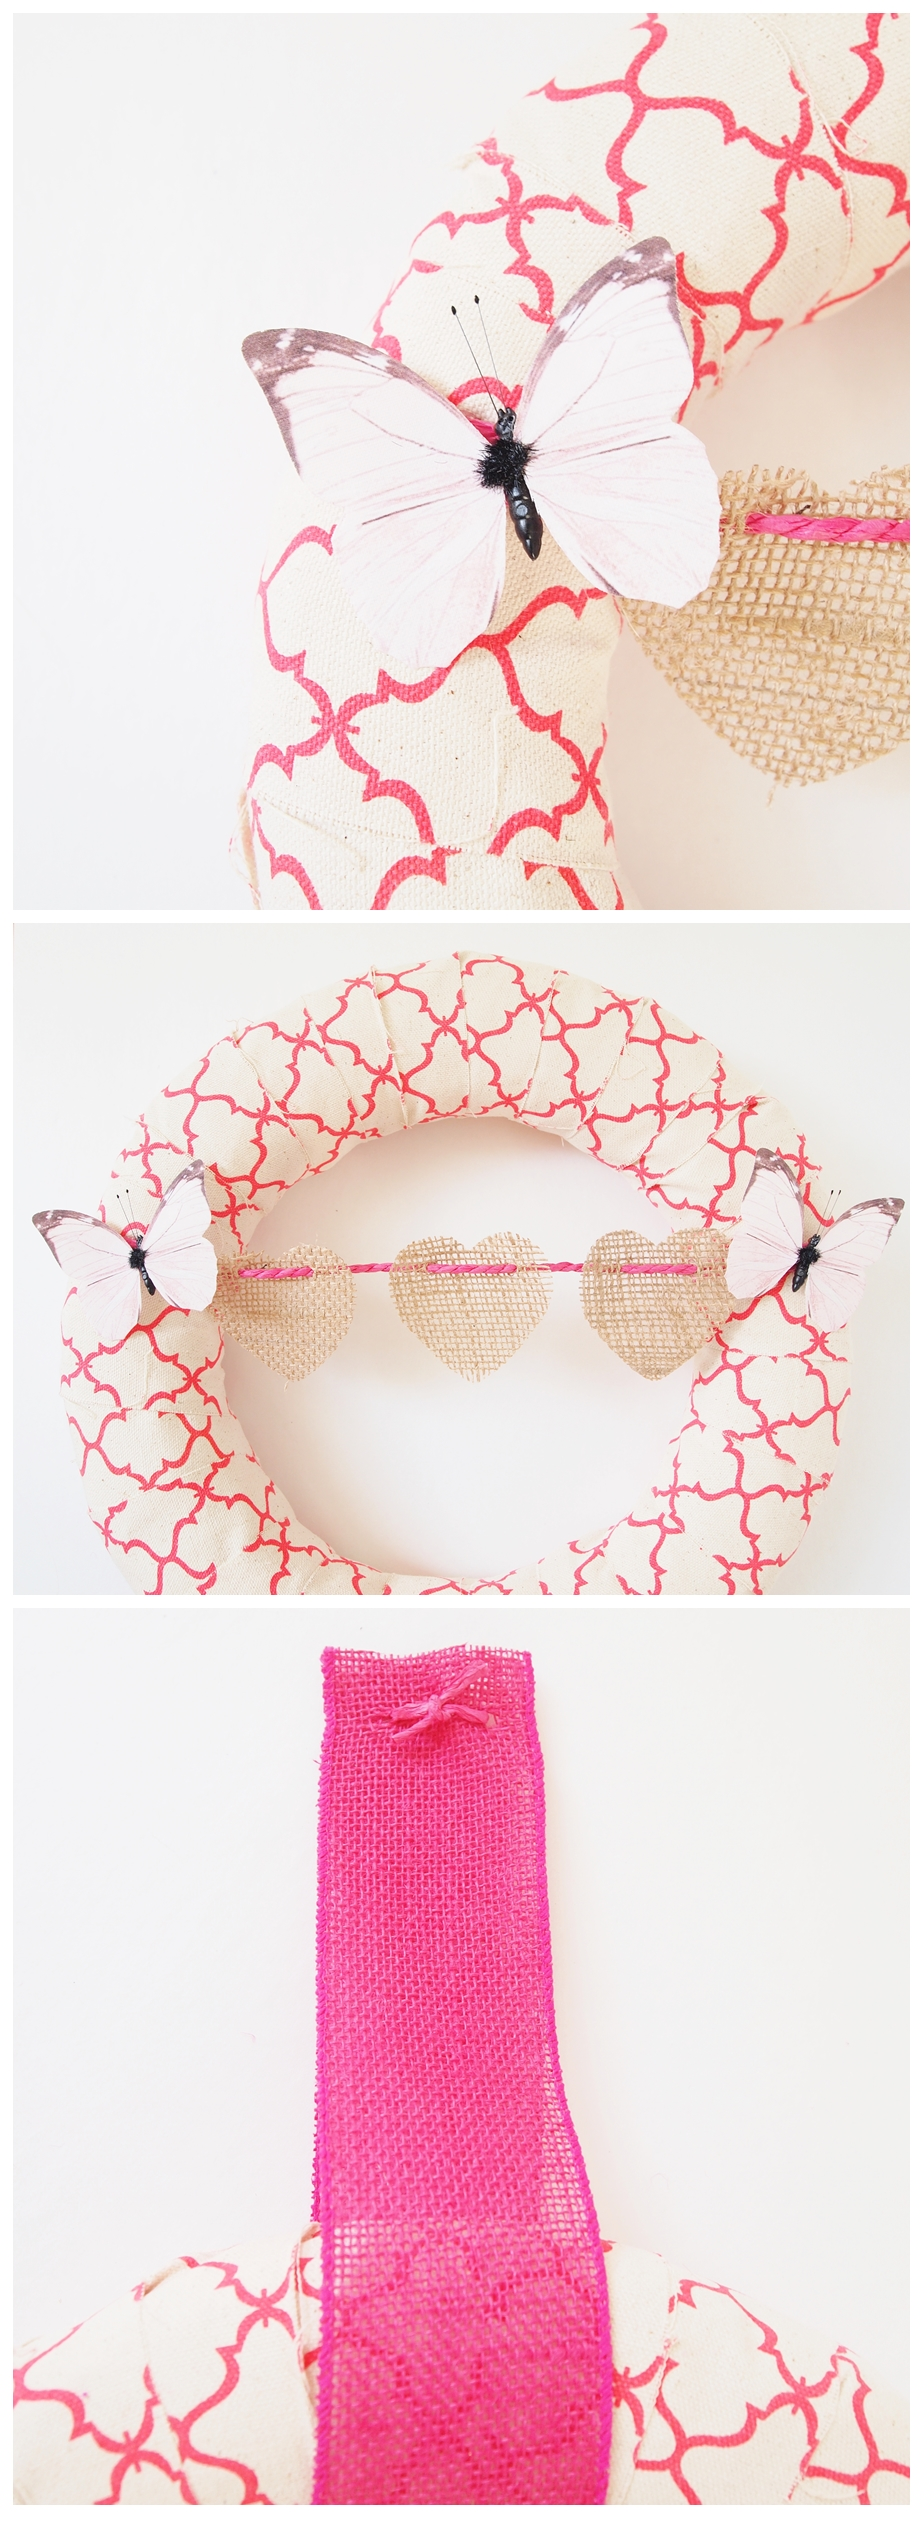 Spring Wreath perfect for valentines day